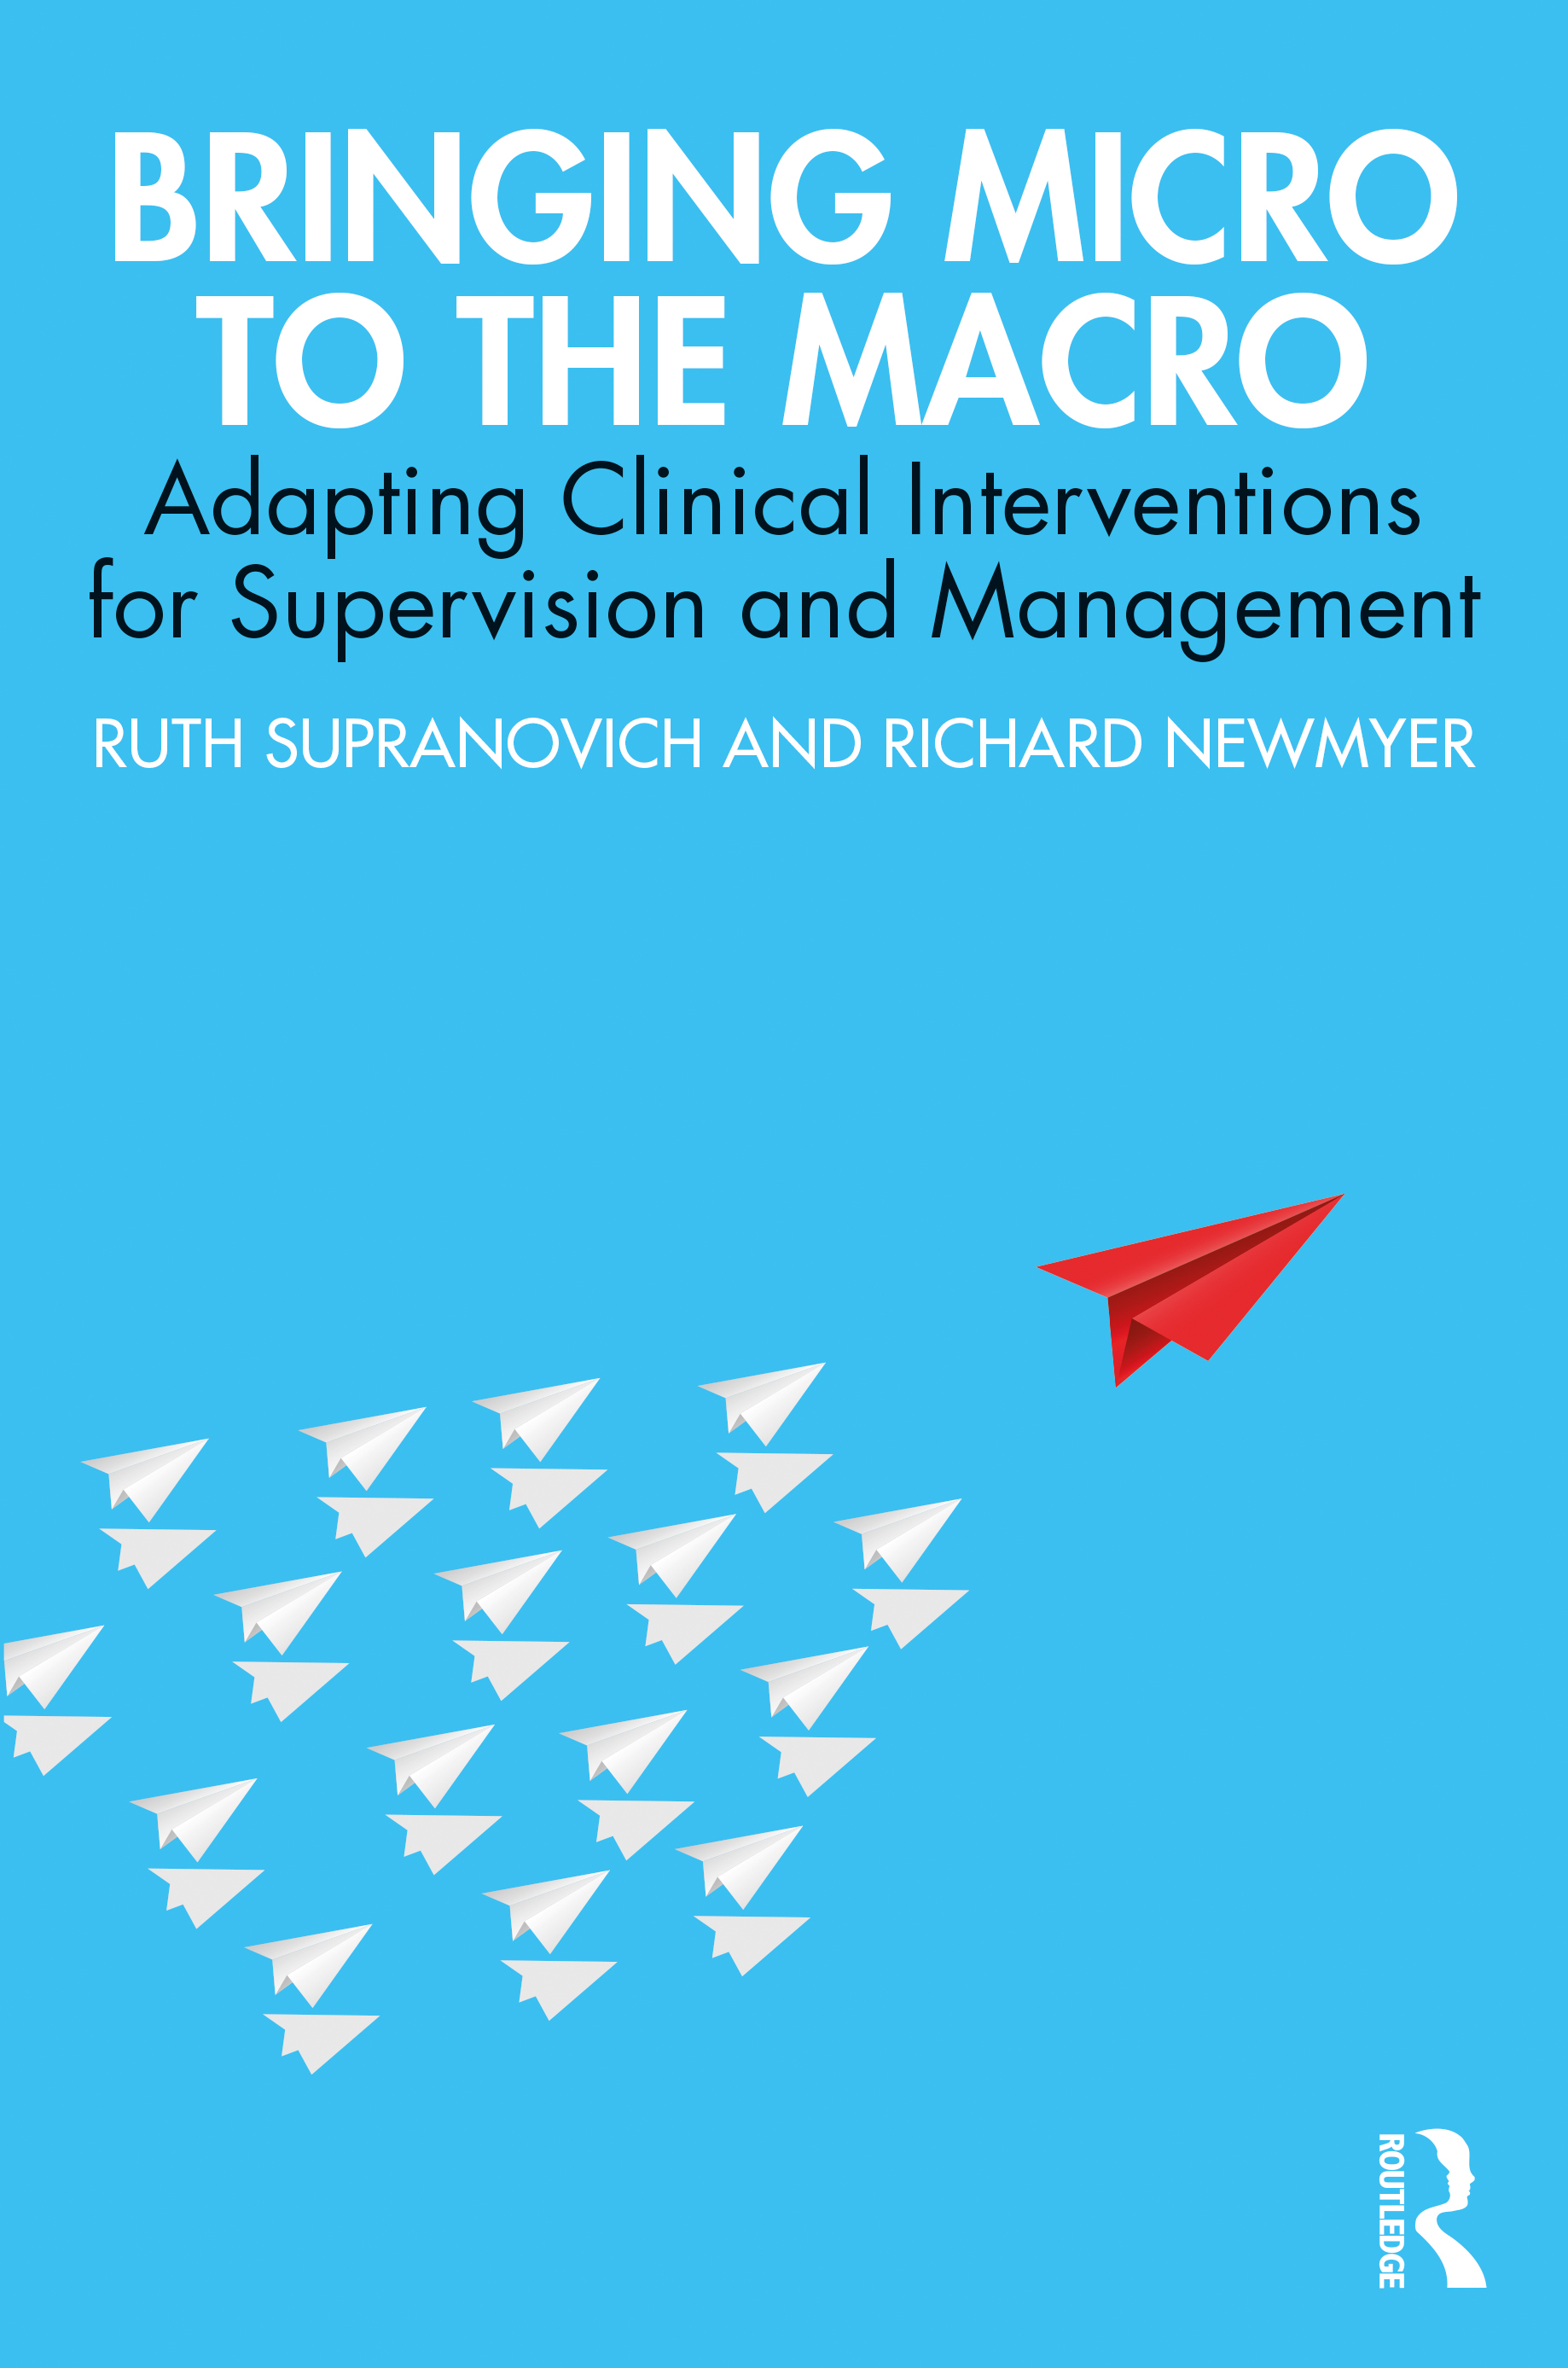 Bringing Micro to the Macro: Adapting Clinical Interventions for Supervision and Management book cover